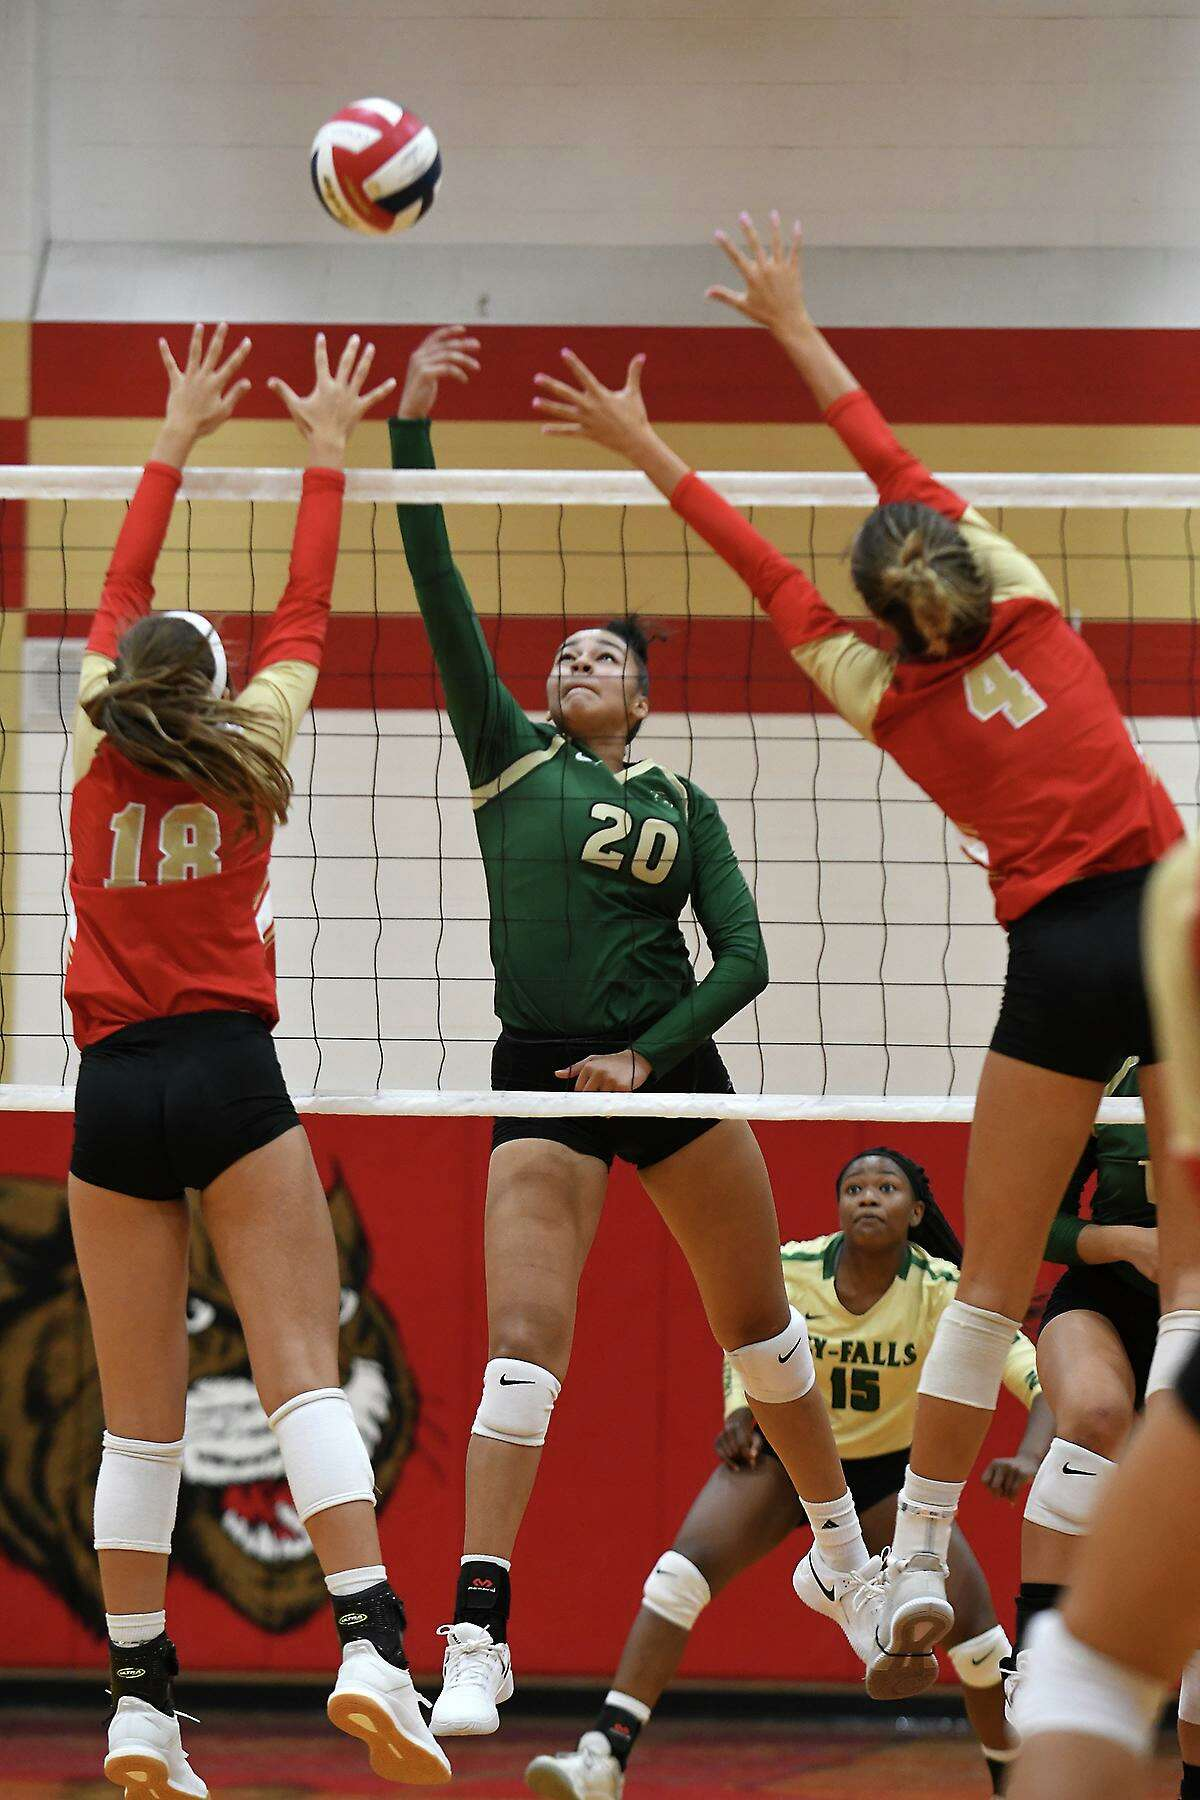 Cy Falls junior Laila Collins (20) was named the District 17-6A Outstanding Blocker, teammate senior Yasmin Mack was named Newcomer of the Year, and senior Morgan Nix was named Outstanding Defensive Player.